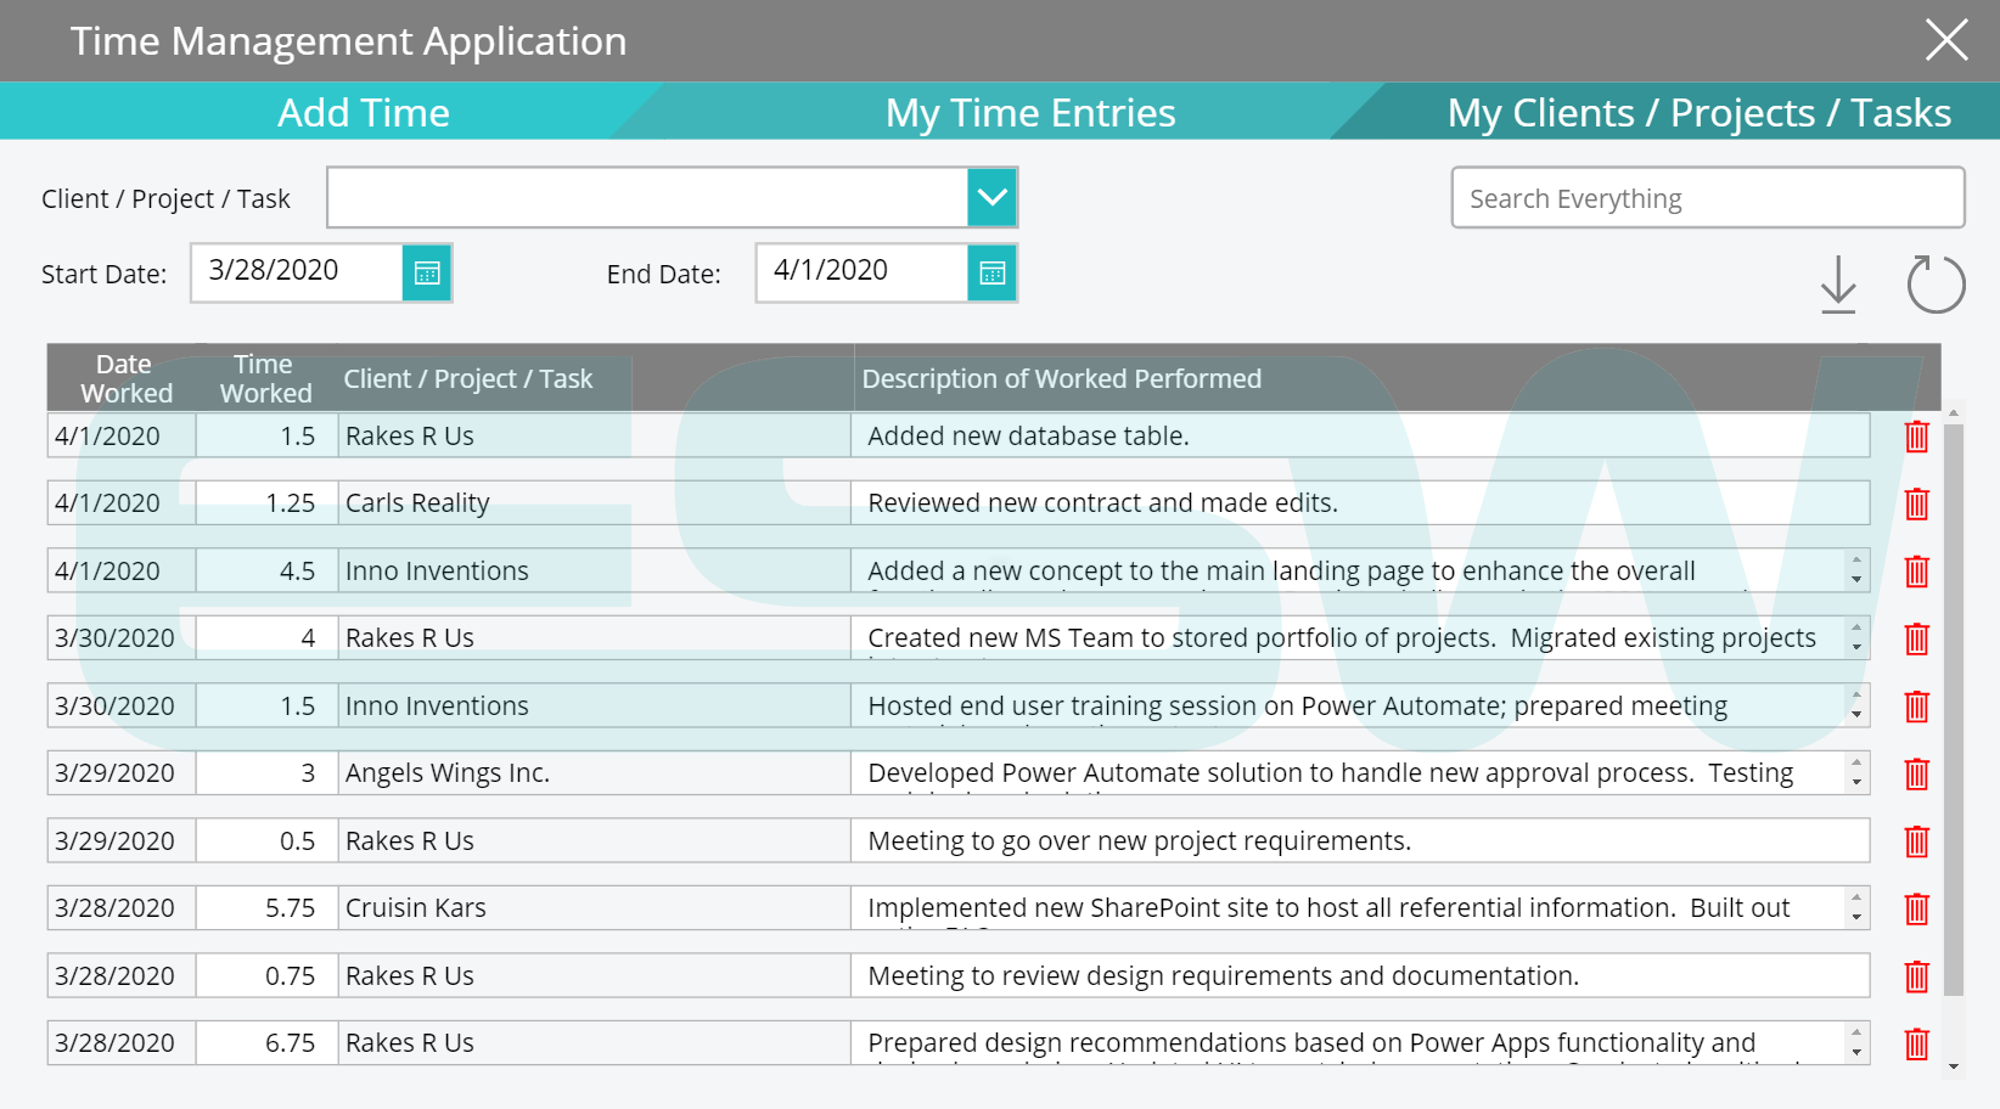 An example of Managing Time Entries with Microsoft Power Apps